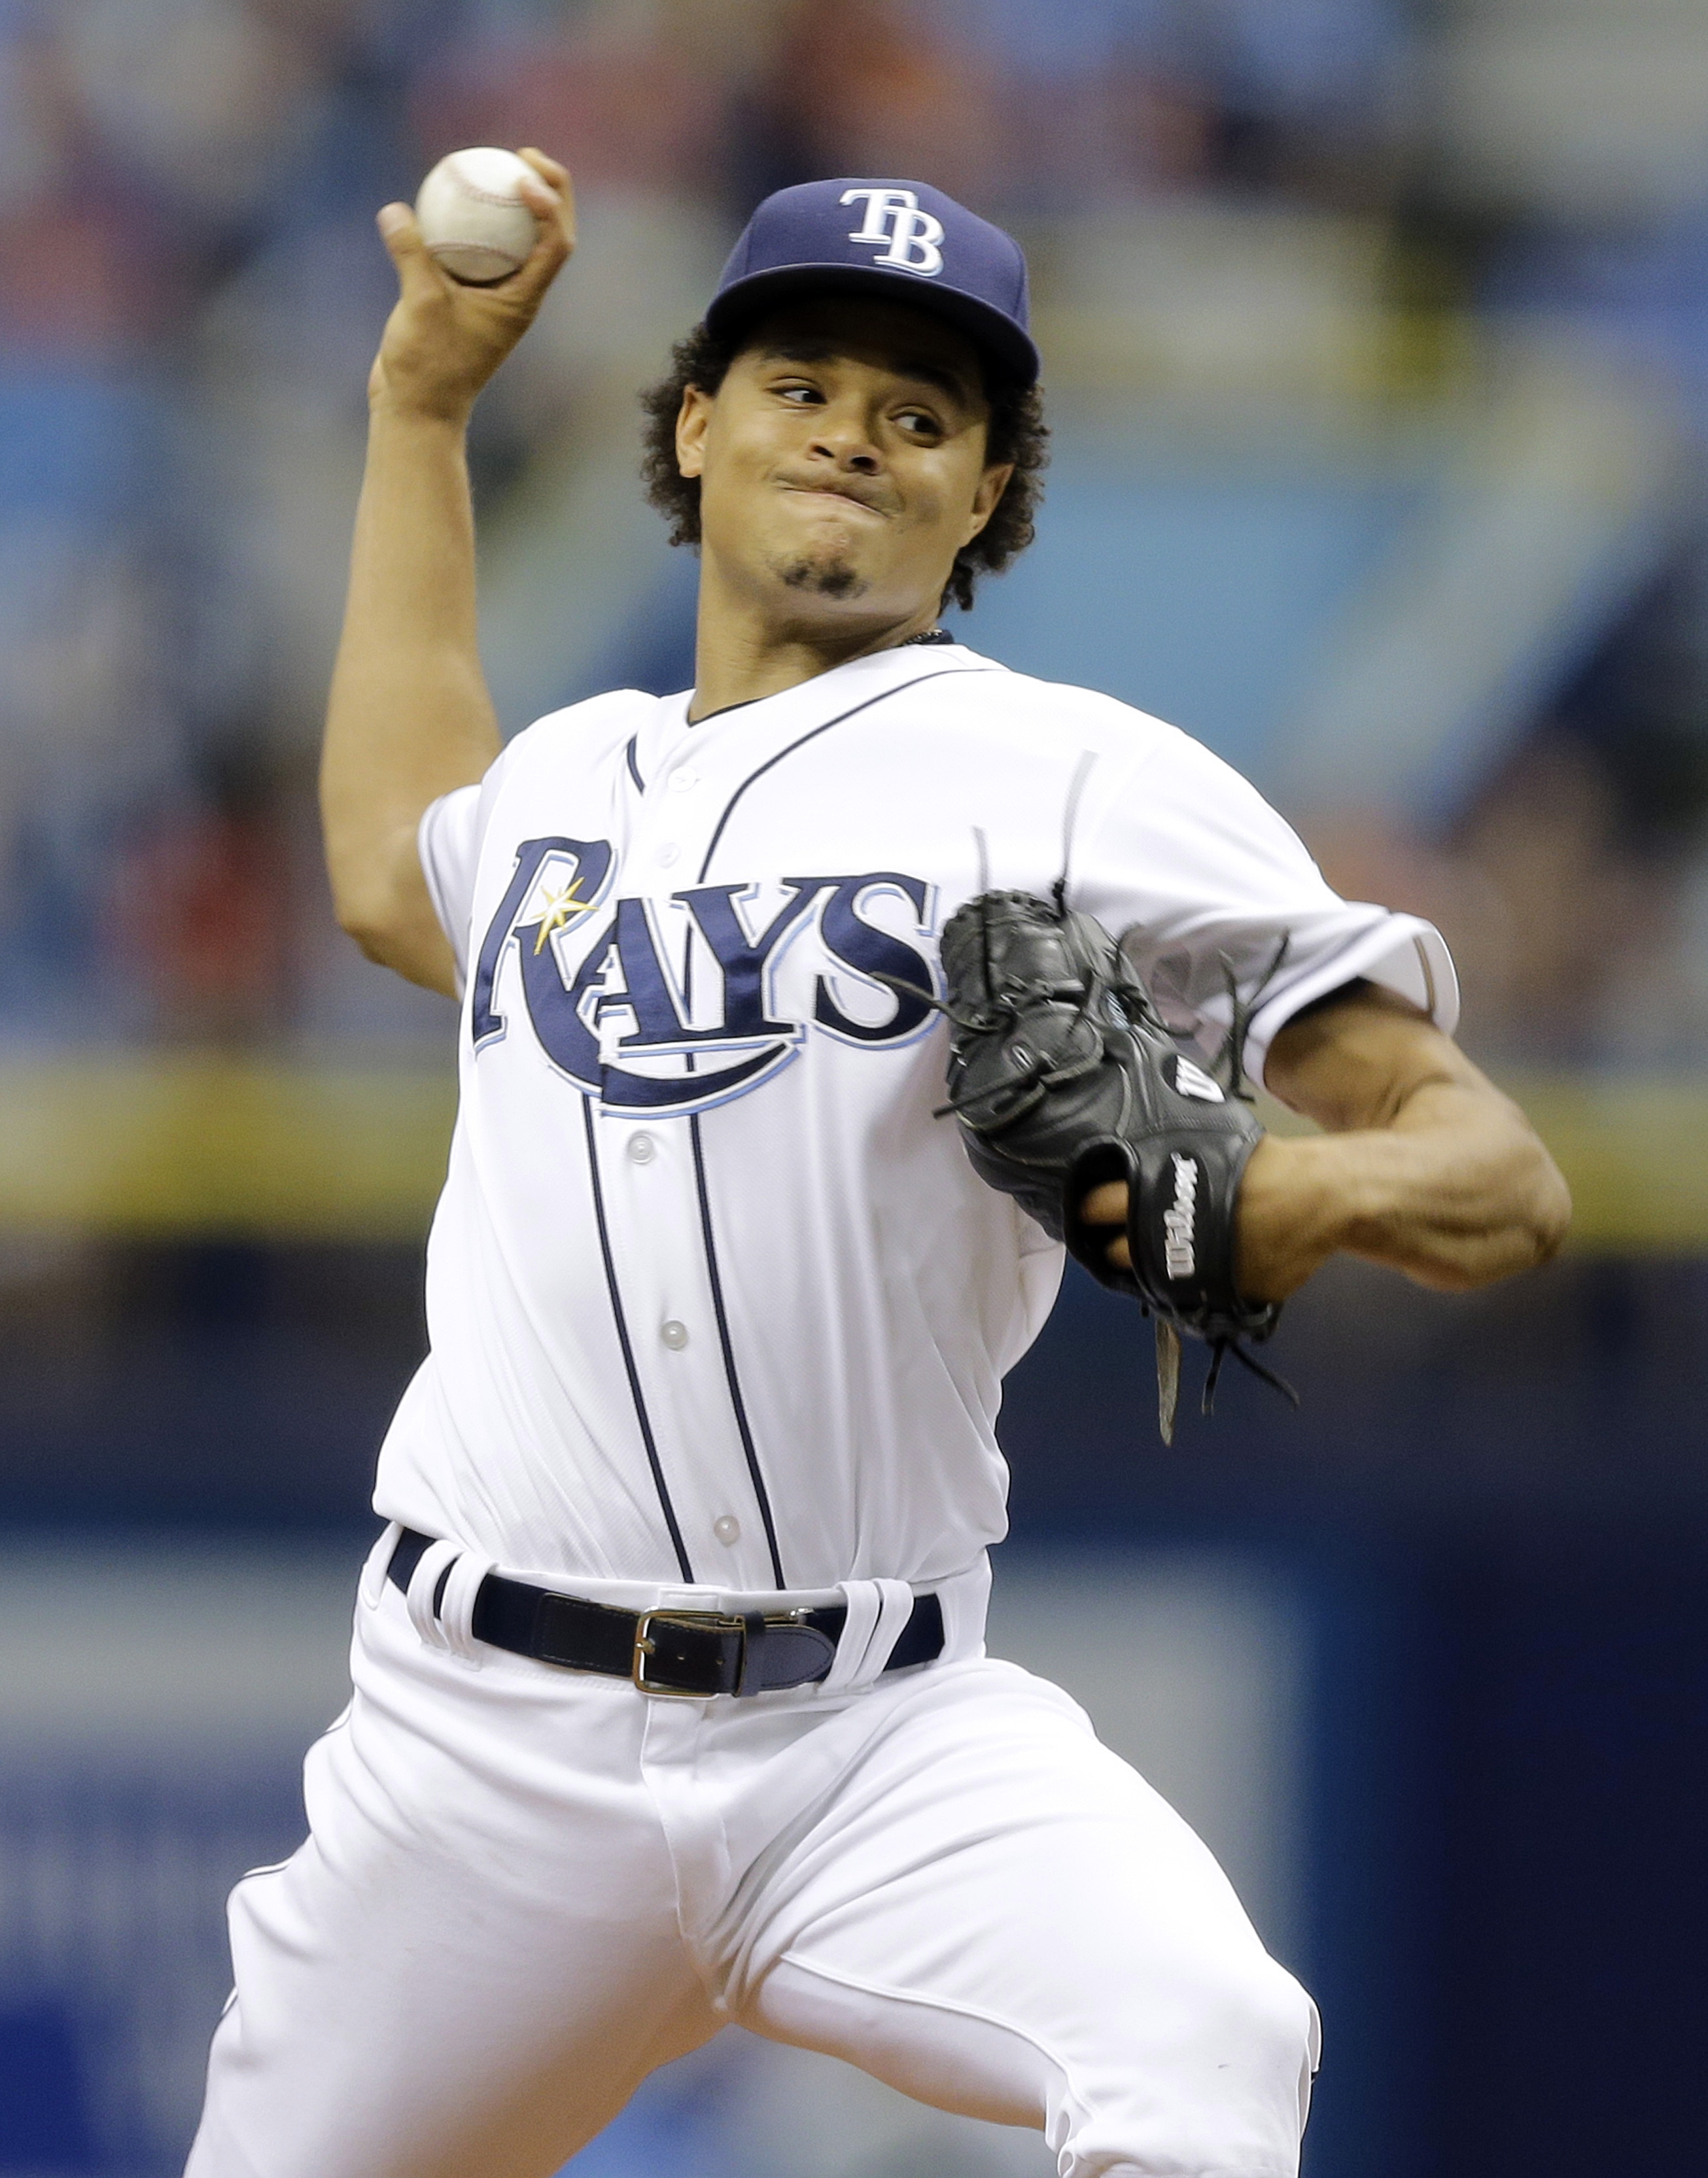 Tampa Bay Rays starting pitcher Chris Archer delivers to the Detroit Tigers during the first inning of a baseball game Wednesday, July 29, 2015, in St. Petersburg, Fla.  (AP Photo/Chris O'Meara)